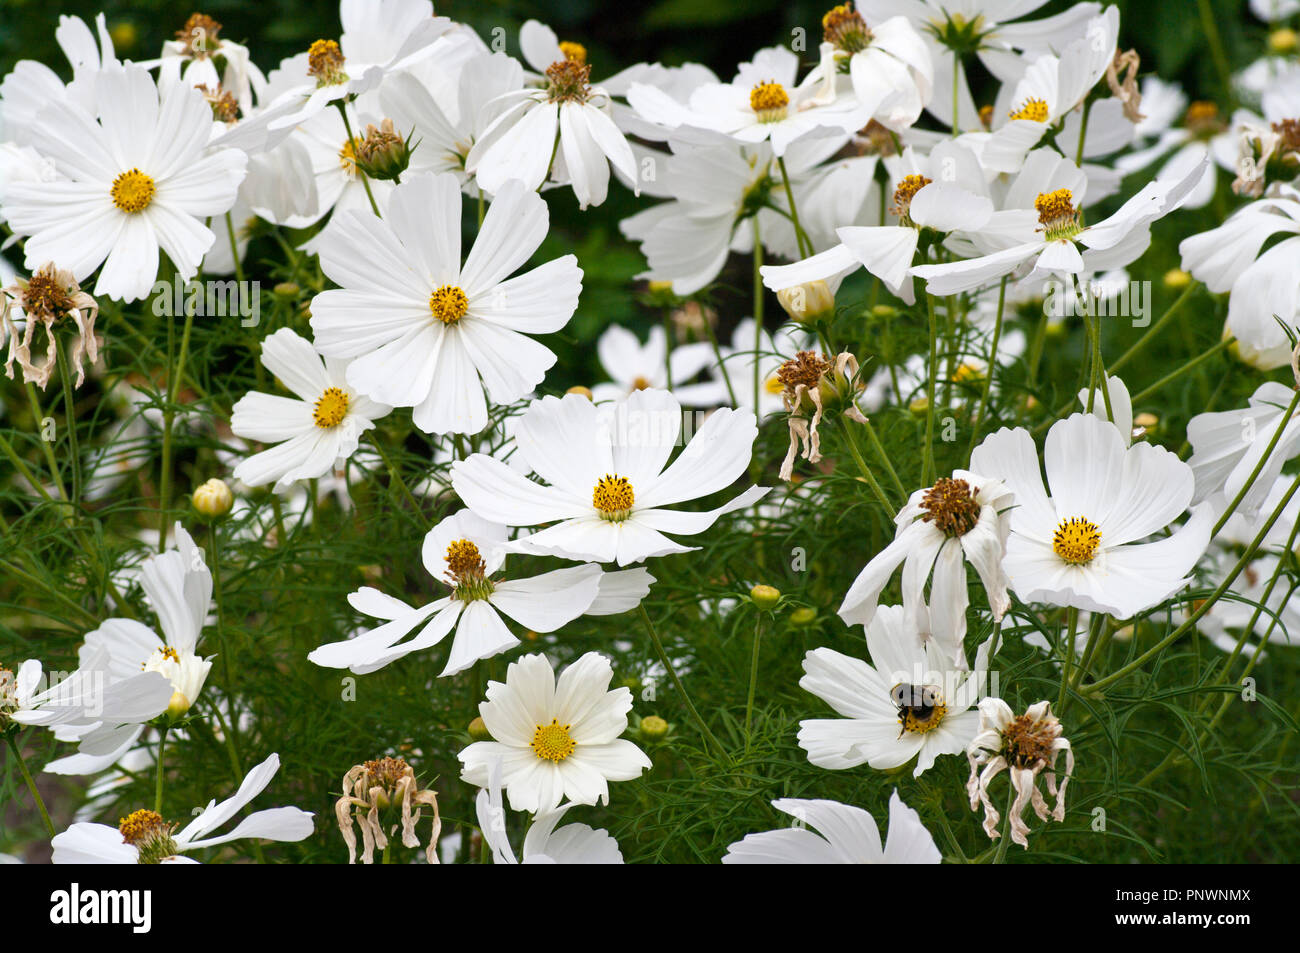 White Cosmos Flowers Stock Photo 219998042 Alamy